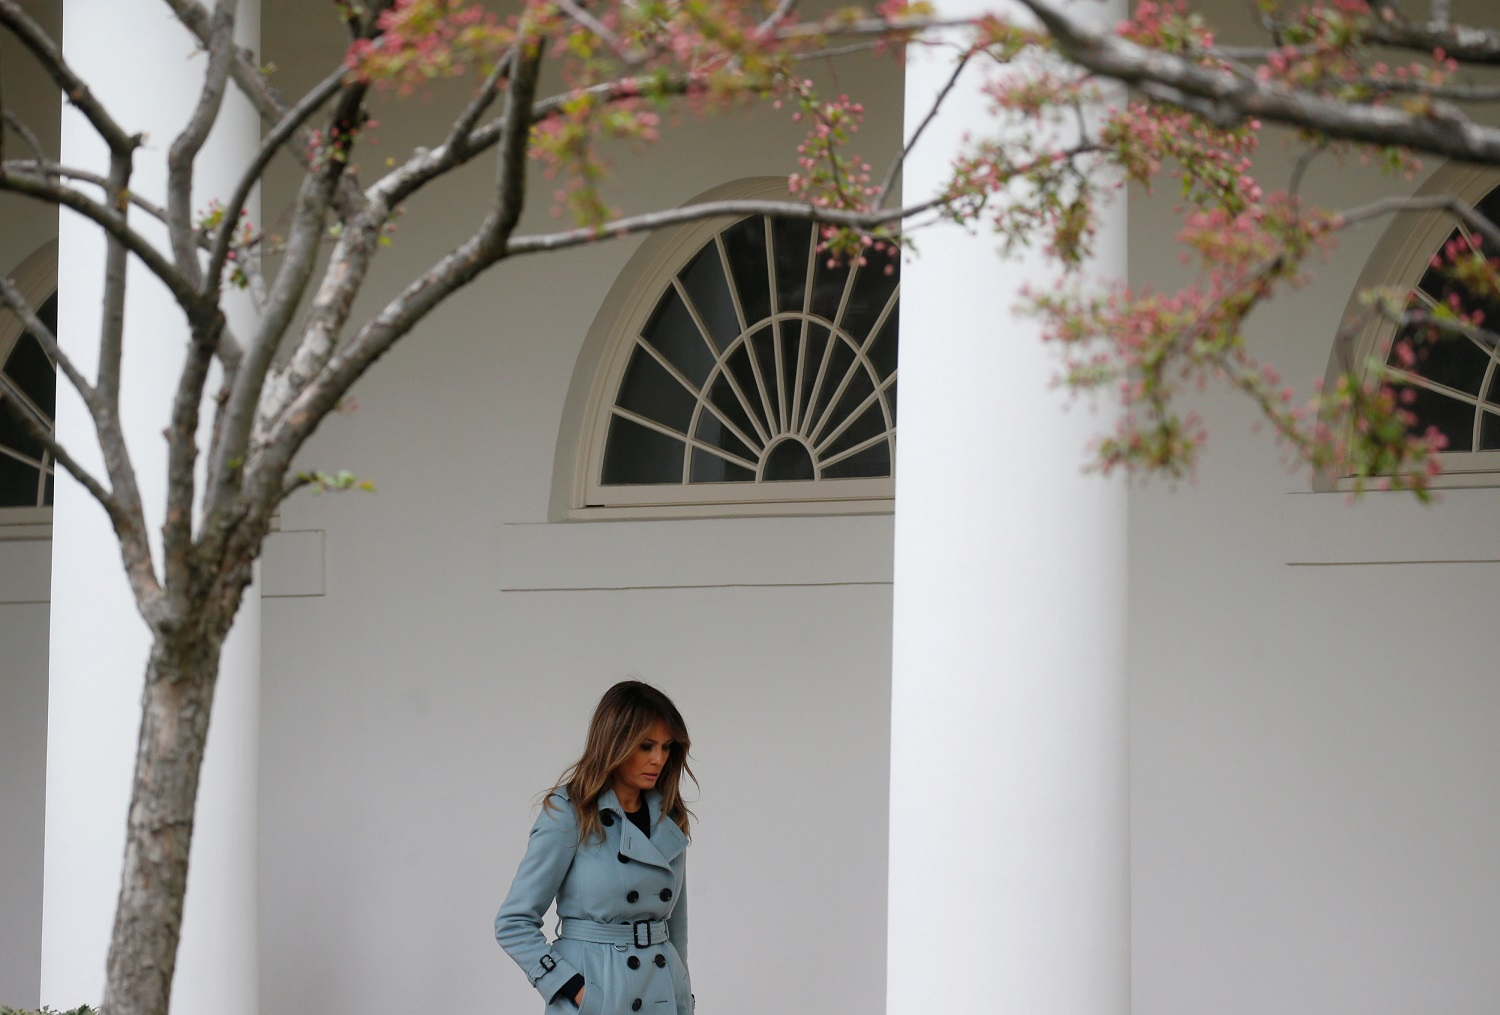 First lady Melania Trump walks by the rose garden after attending the annual White House Easter Egg Roll on the South Lawn of the White House in Washington, April 2, 2018. REUTERS/Leah Millis